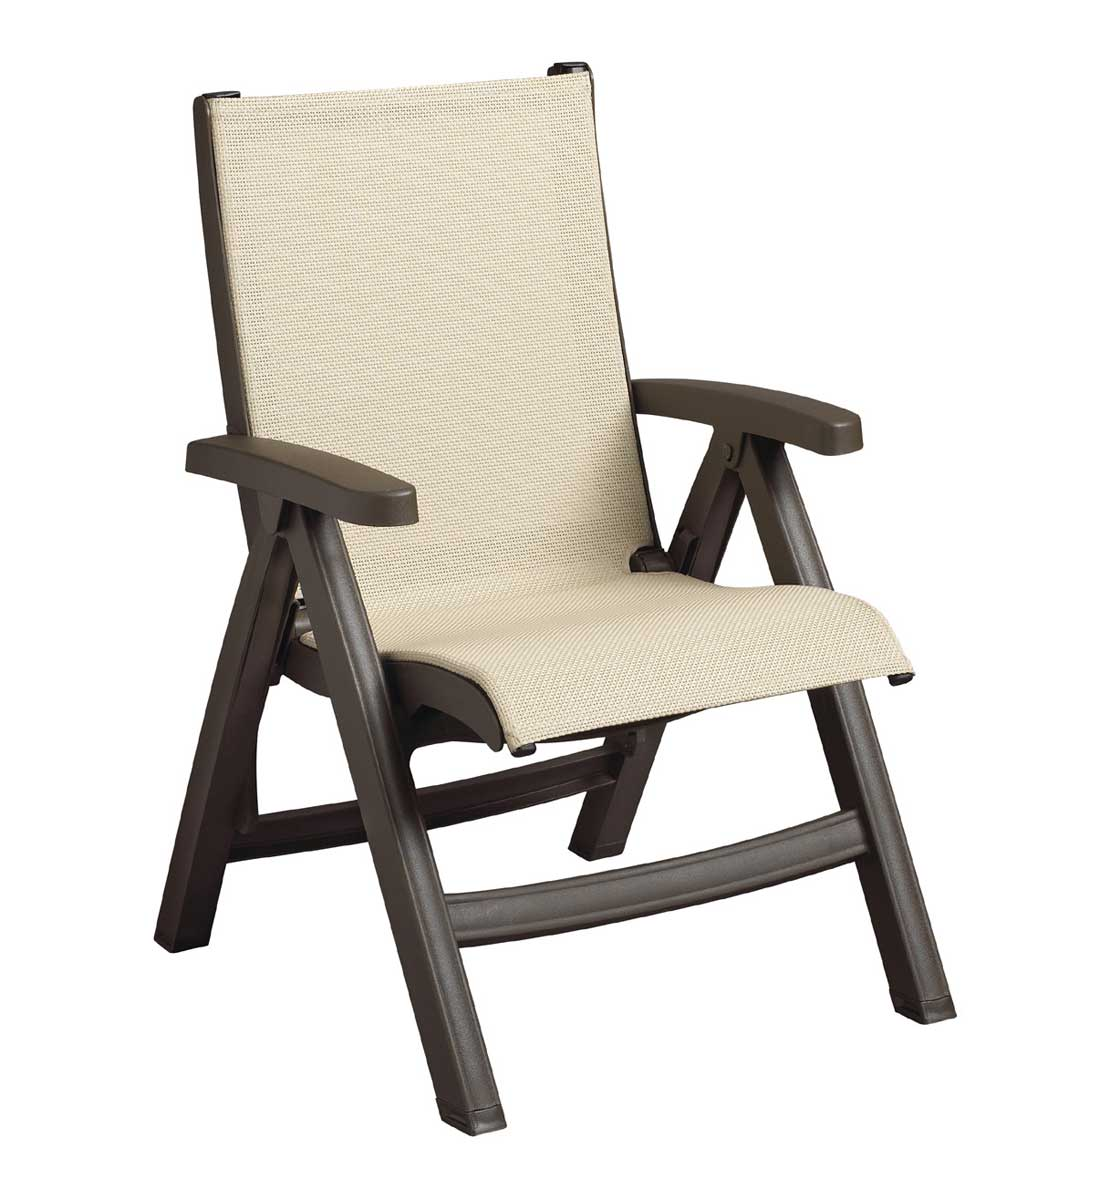 Belize Midback Resin Folding Patio Chairs